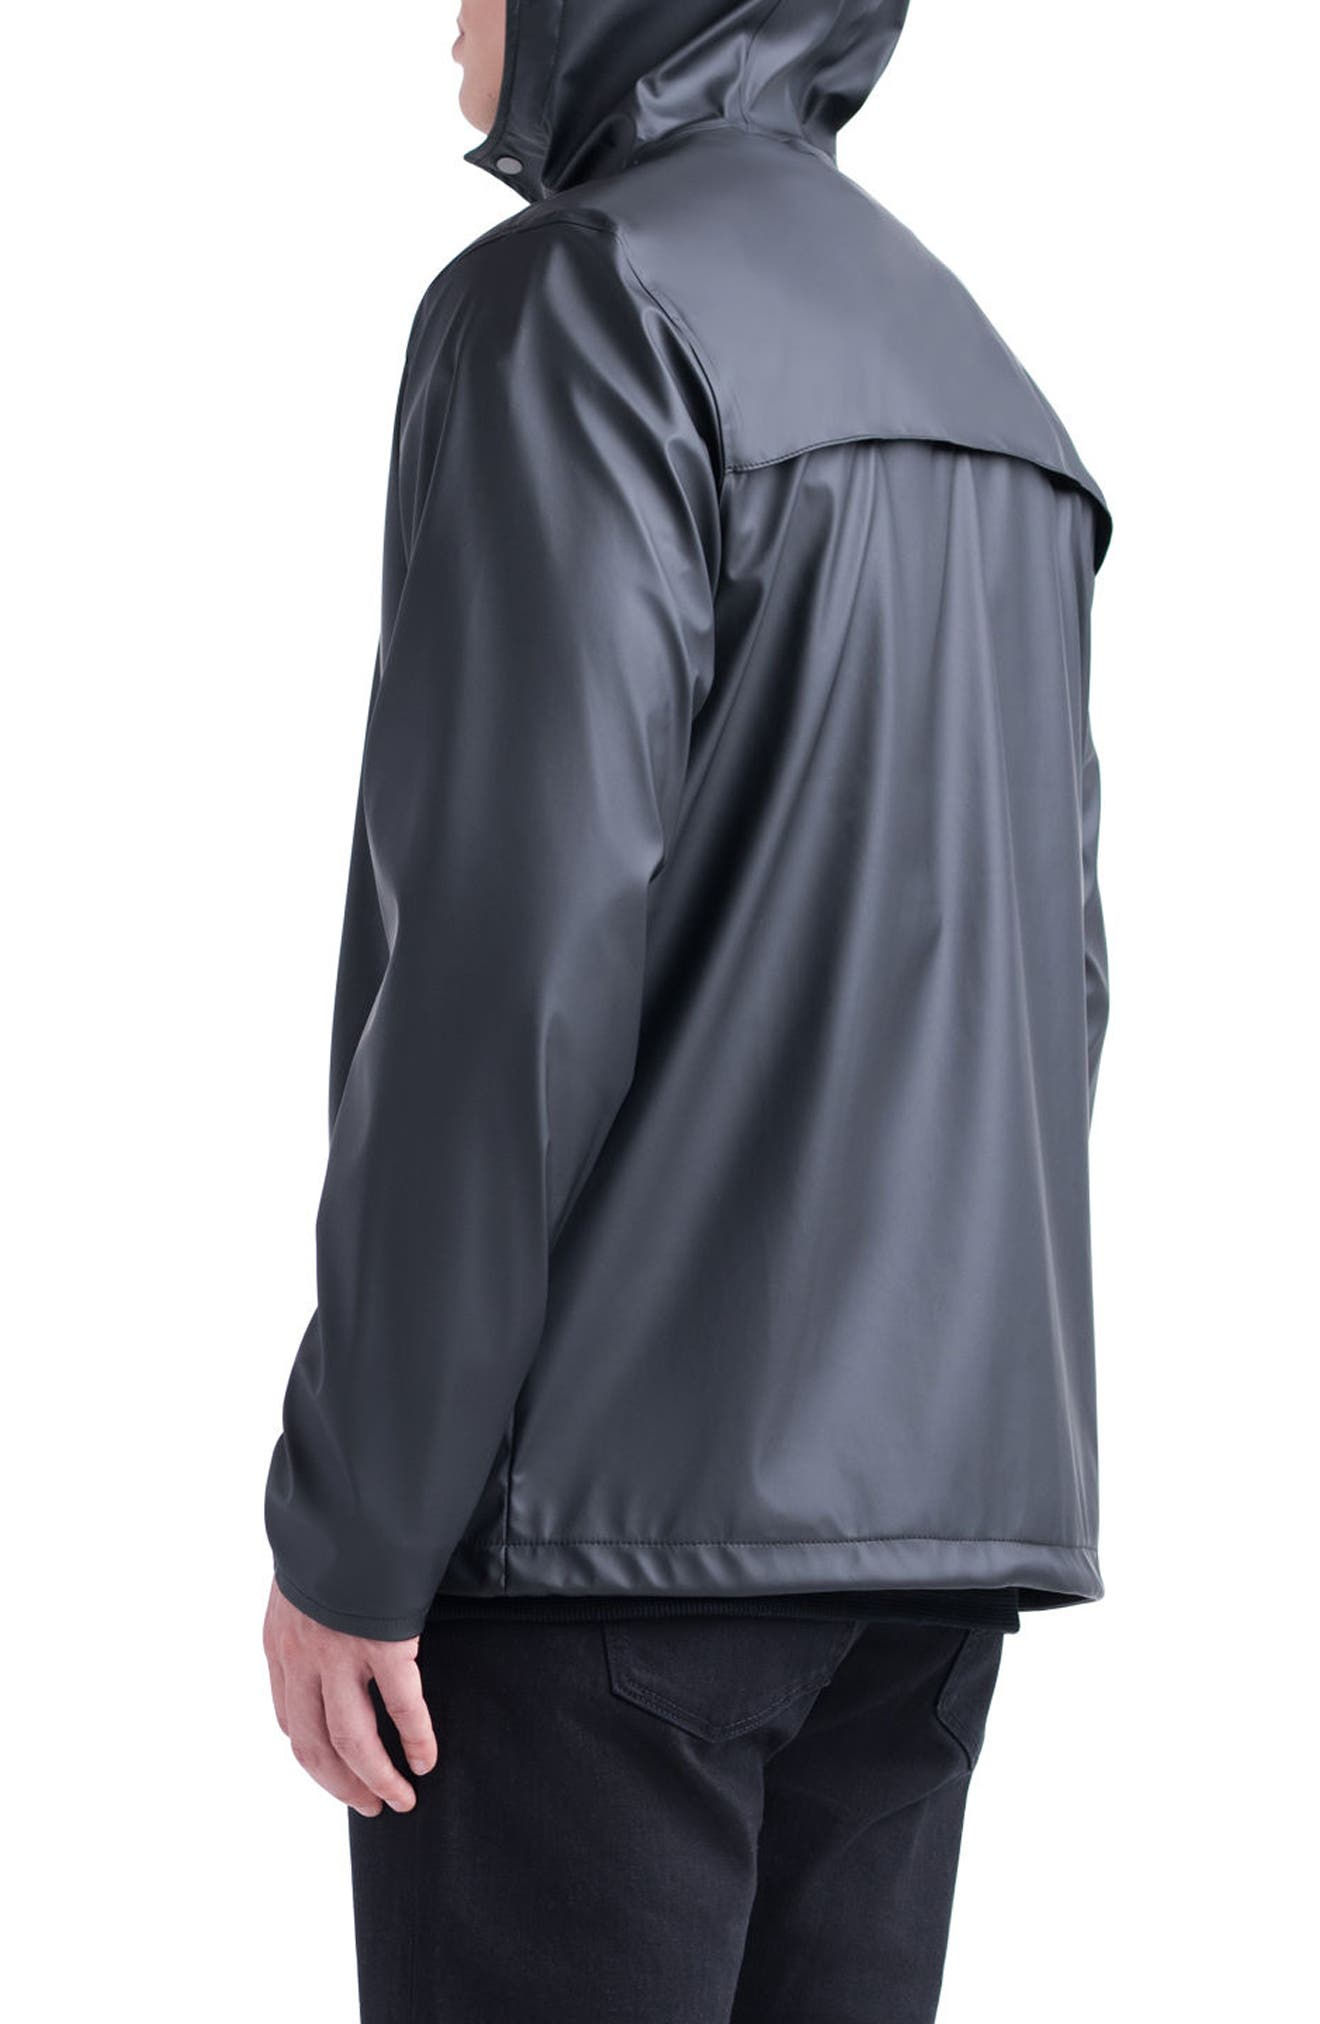 Forecast Hooded Coaches Jacket,                             Alternate thumbnail 25, color,